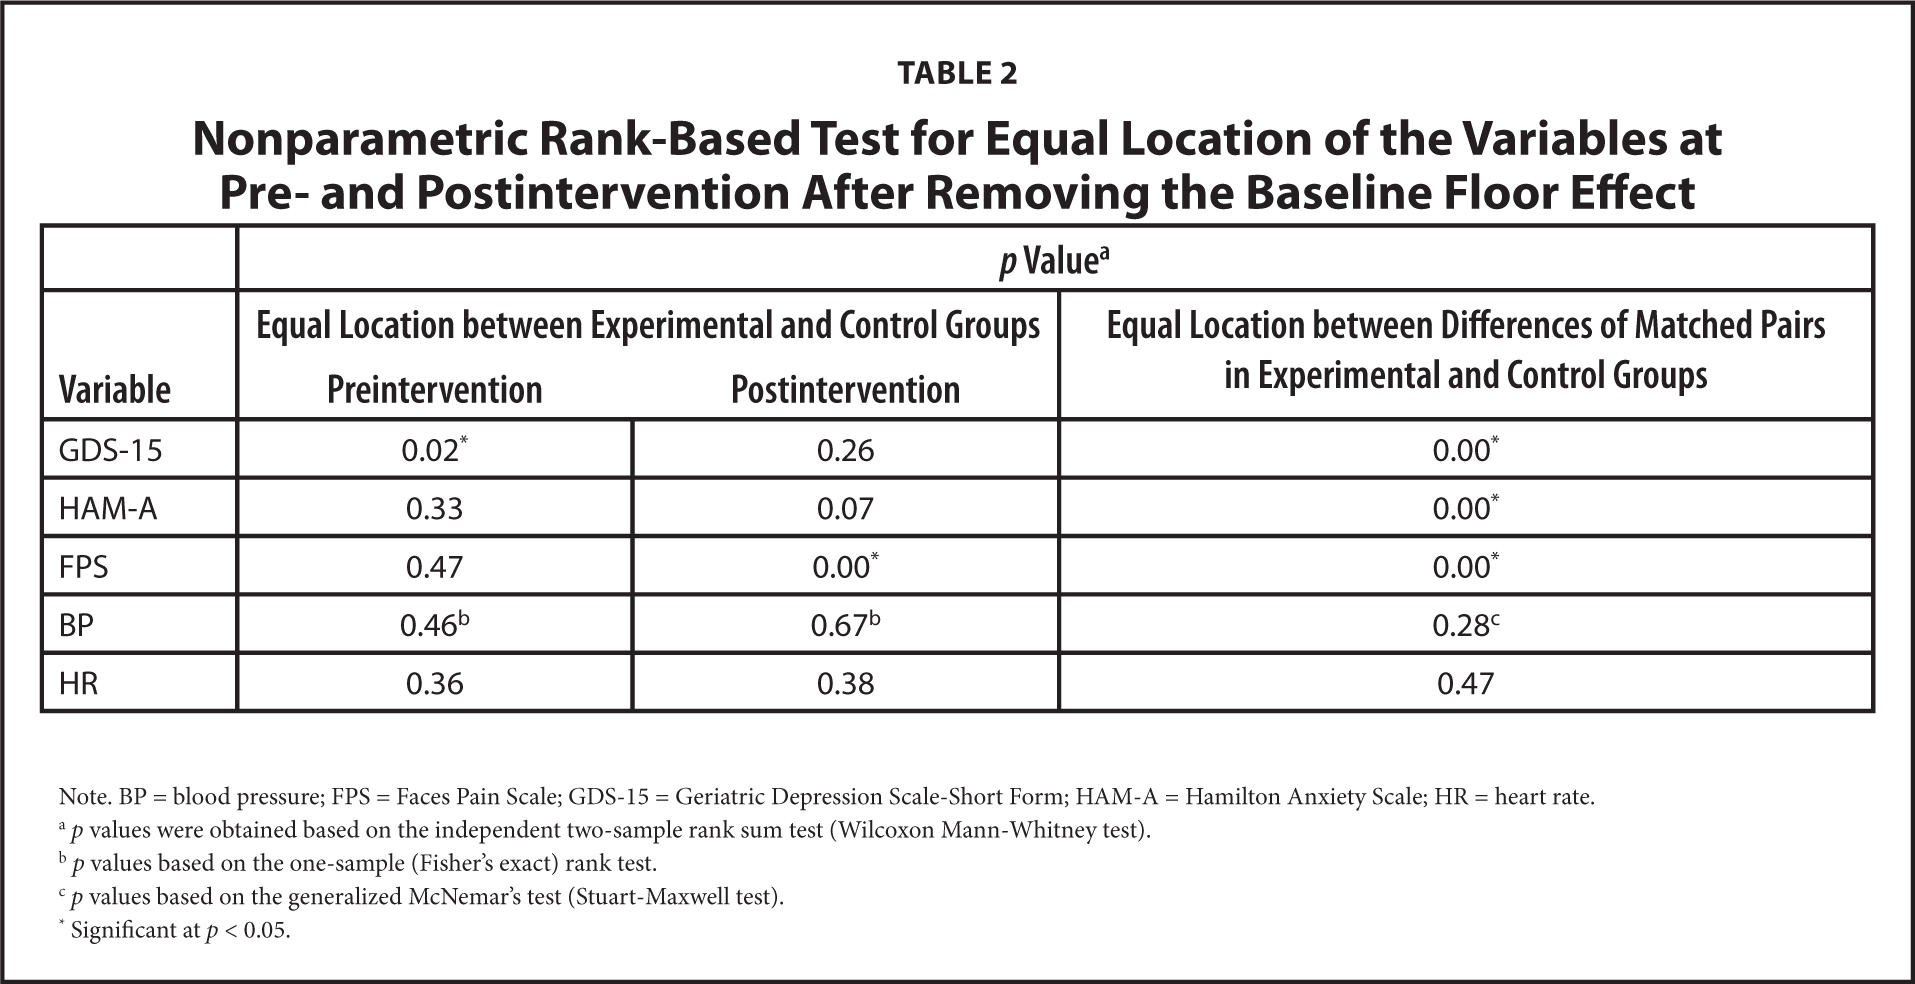 Nonparametric Rank-Based Test for Equal Location of the Variables at Pre- and Postintervention After Removing the Baseline Floor Effect